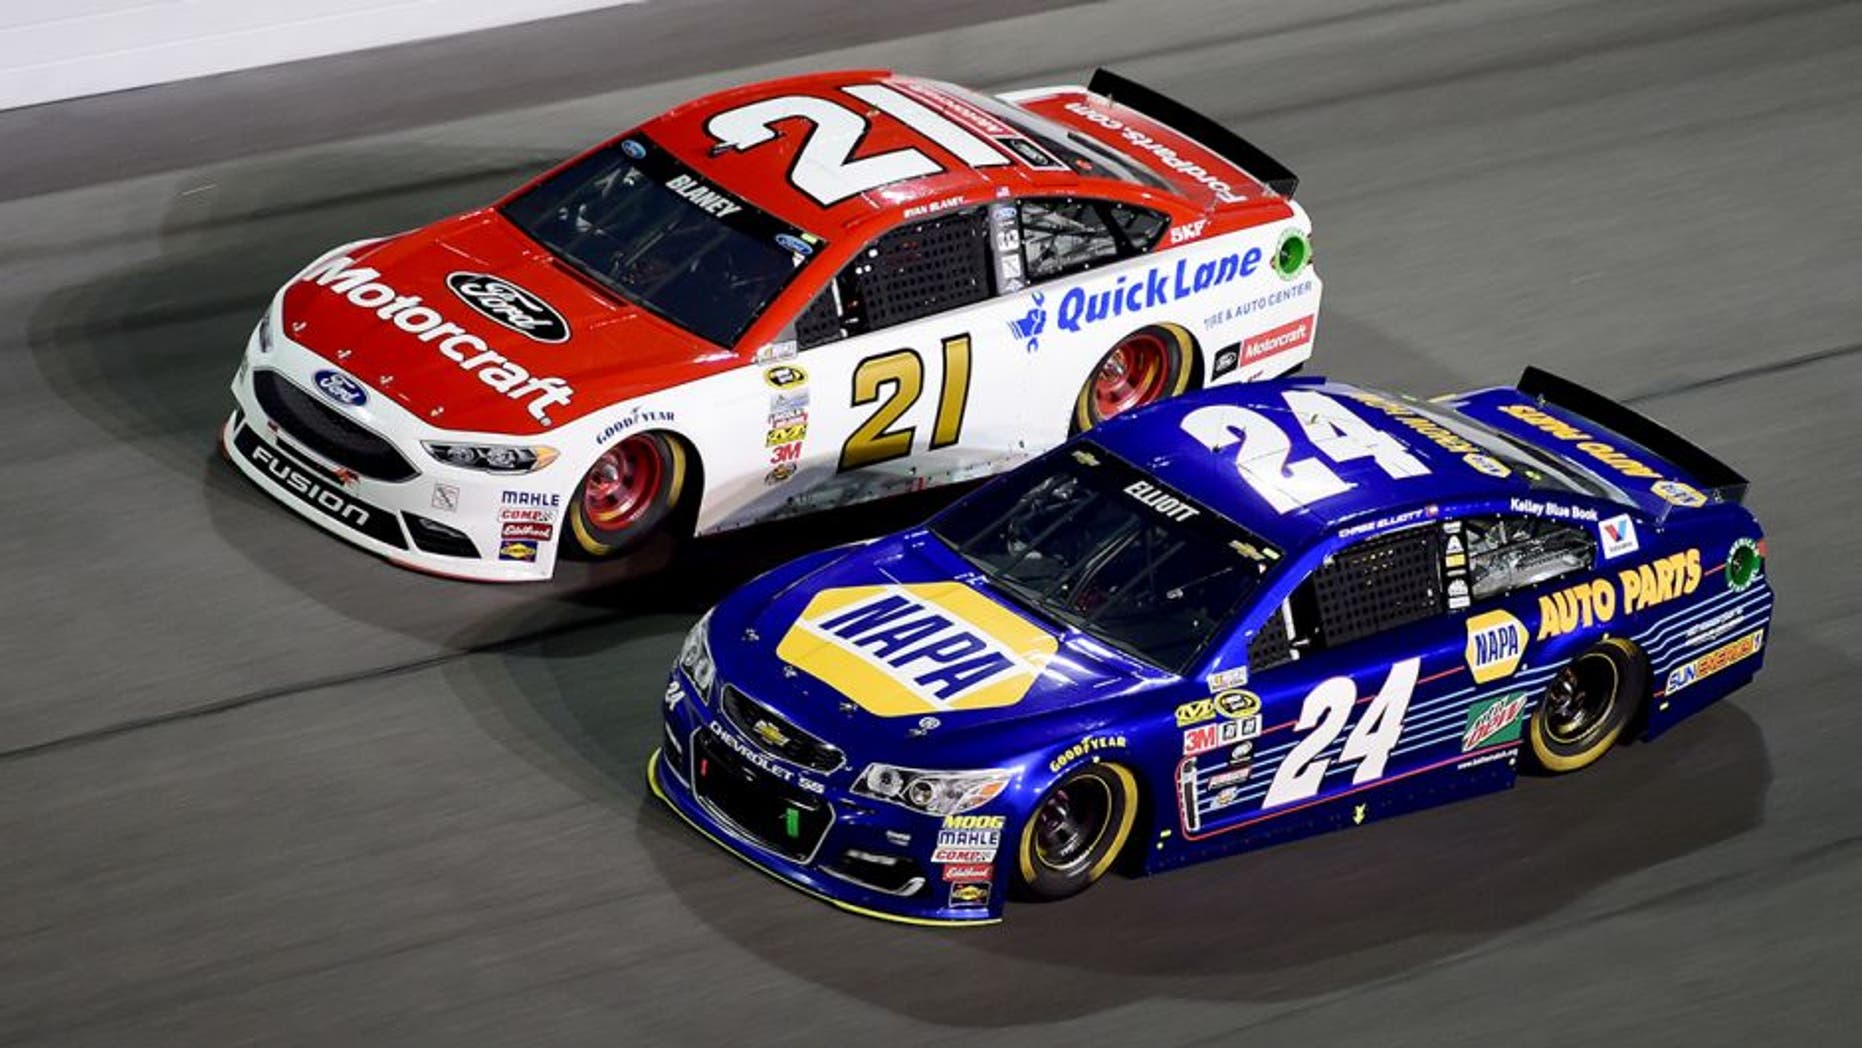 DAYTONA BEACH, FL - FEBRUARY 18: Chase Elliott, driver of the #24 NAPA Auto Parts Chevrolet, races Ryan Blaney, driver of the #21 Motorcraft/Quick Lane Tire & Auto Center Ford, during the NASCAR Sprint Cup Series Can-Am Duels at Daytona International Speedway on February 18, 2016 in Daytona Beach, Florida. (Photo by Jared C. Tilton/Getty Images)